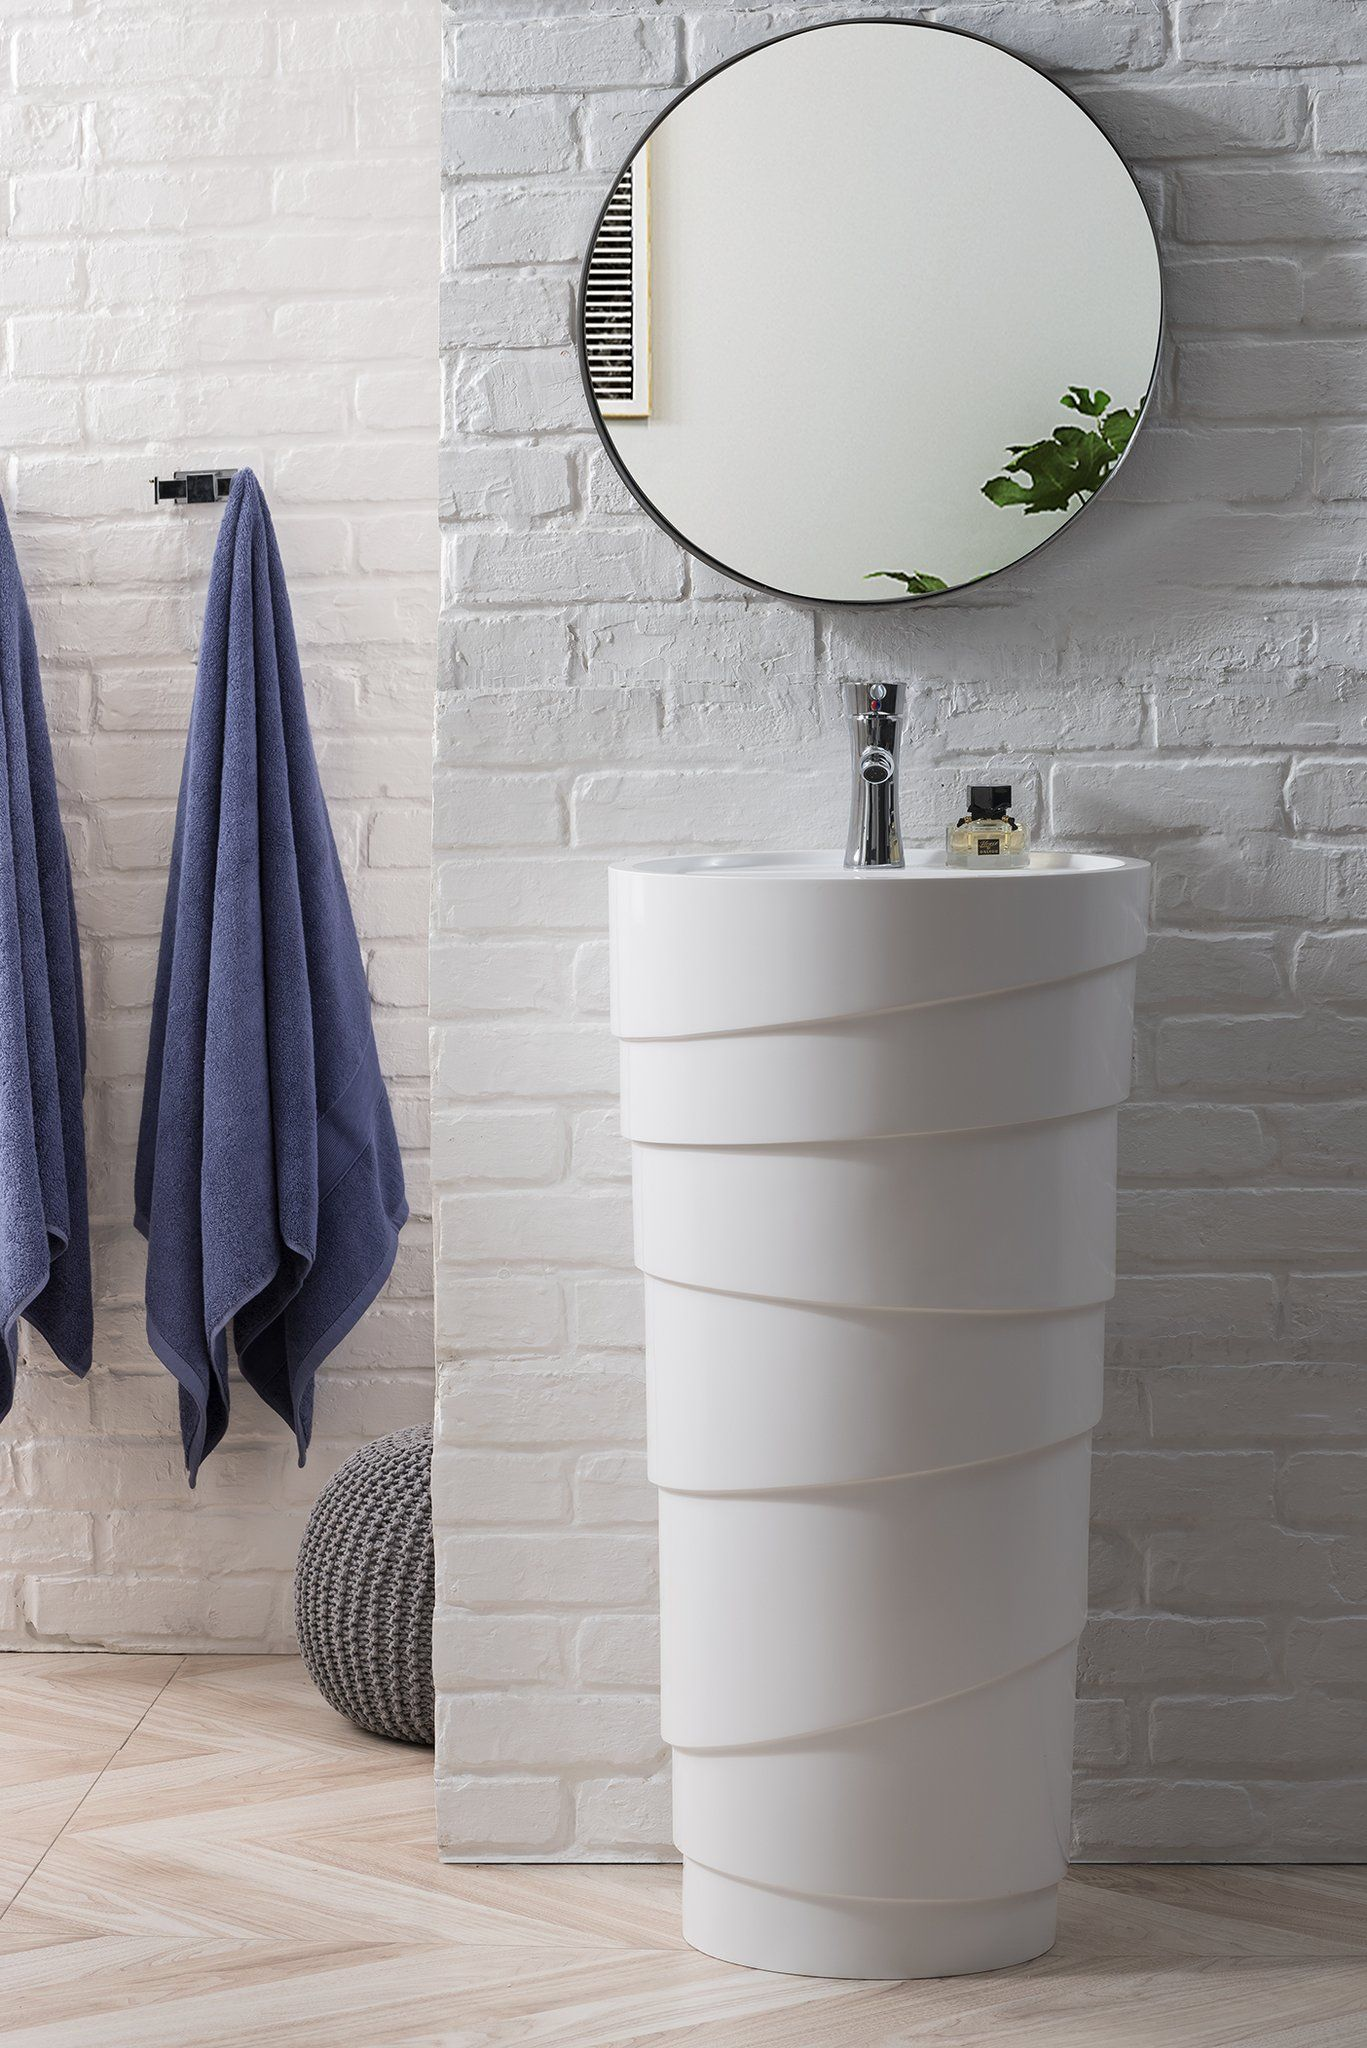 Quebec 17 5 Solid Surface Pedestal Sink Bright White With Images Pedestal Sink Small Bathroom Solid Surface